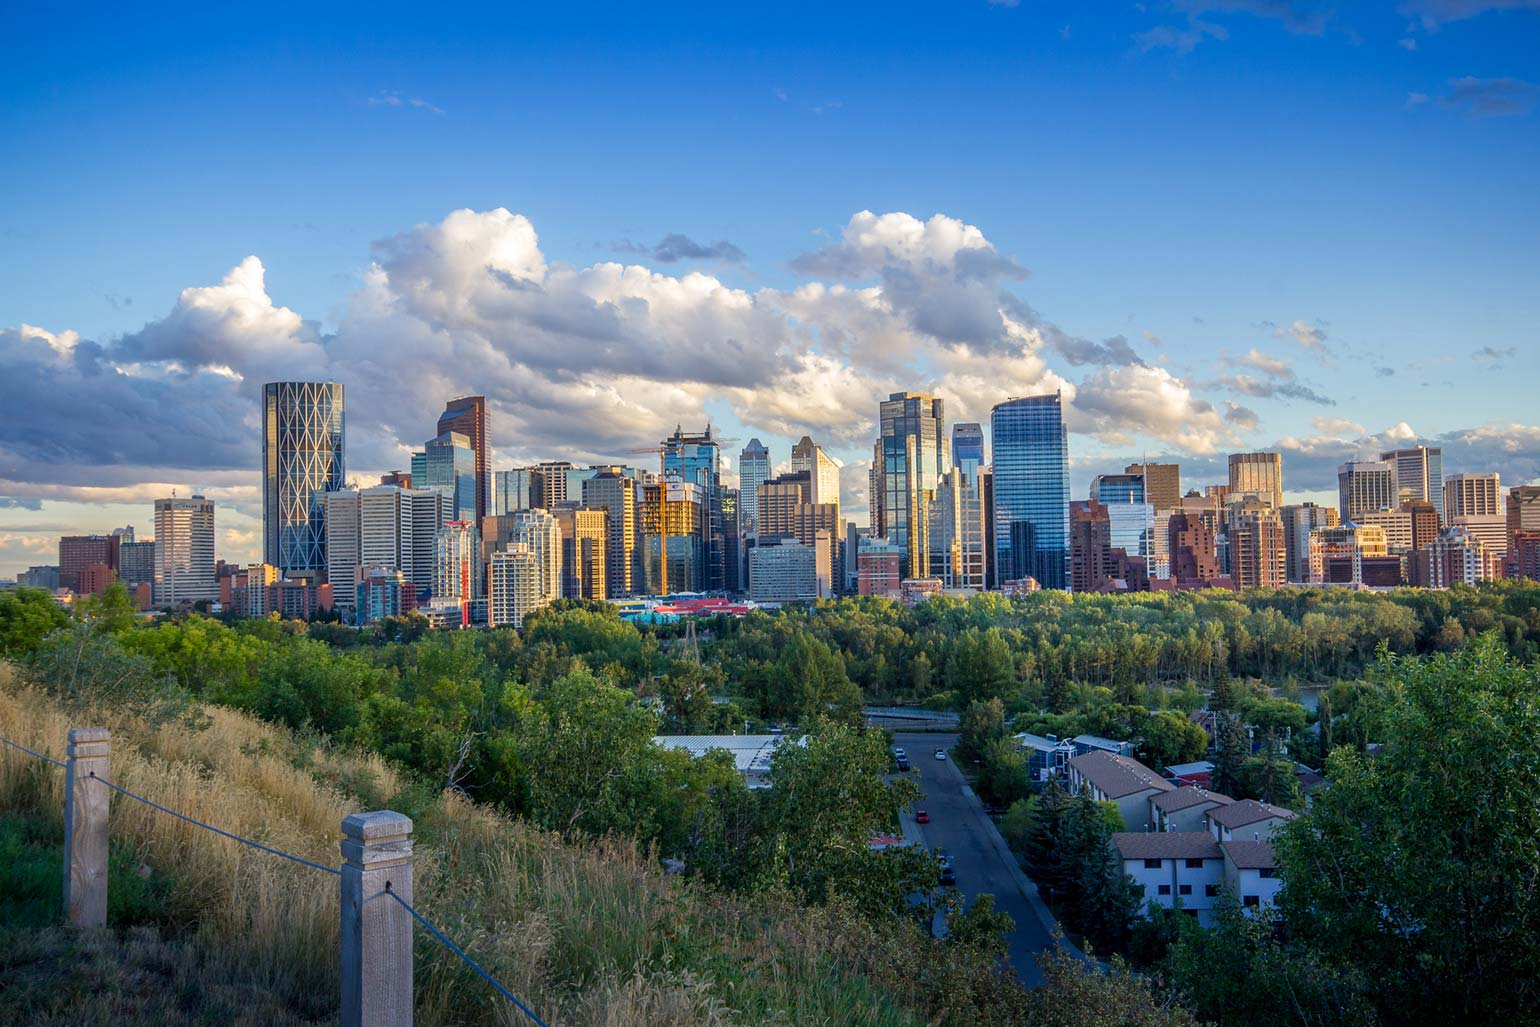 View of downtown Calgary and its buildings while clouds float in the sky above.